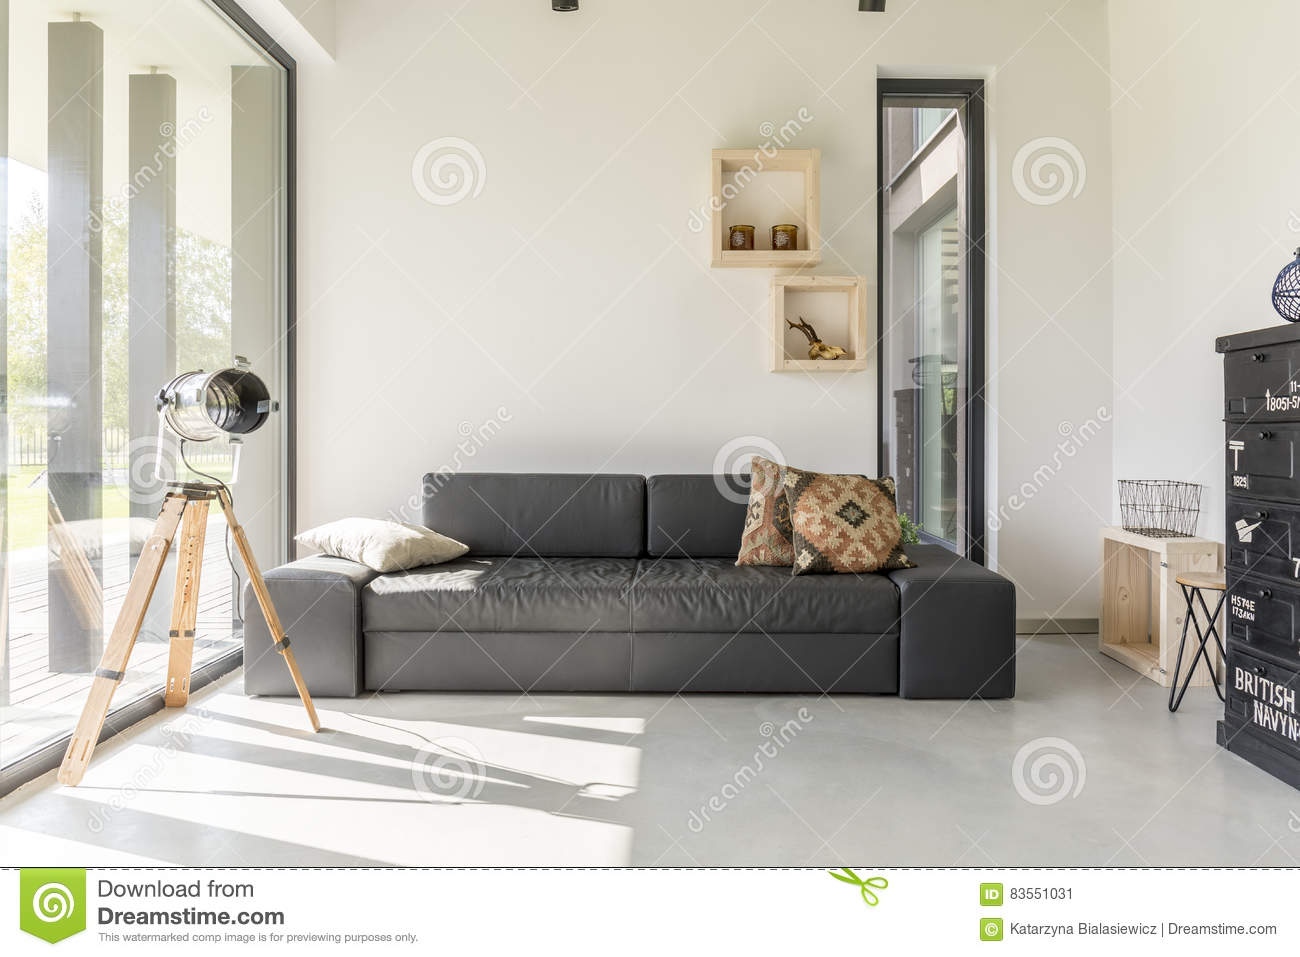 Living Room With Black Furniture Stock Image - Image of bright ...